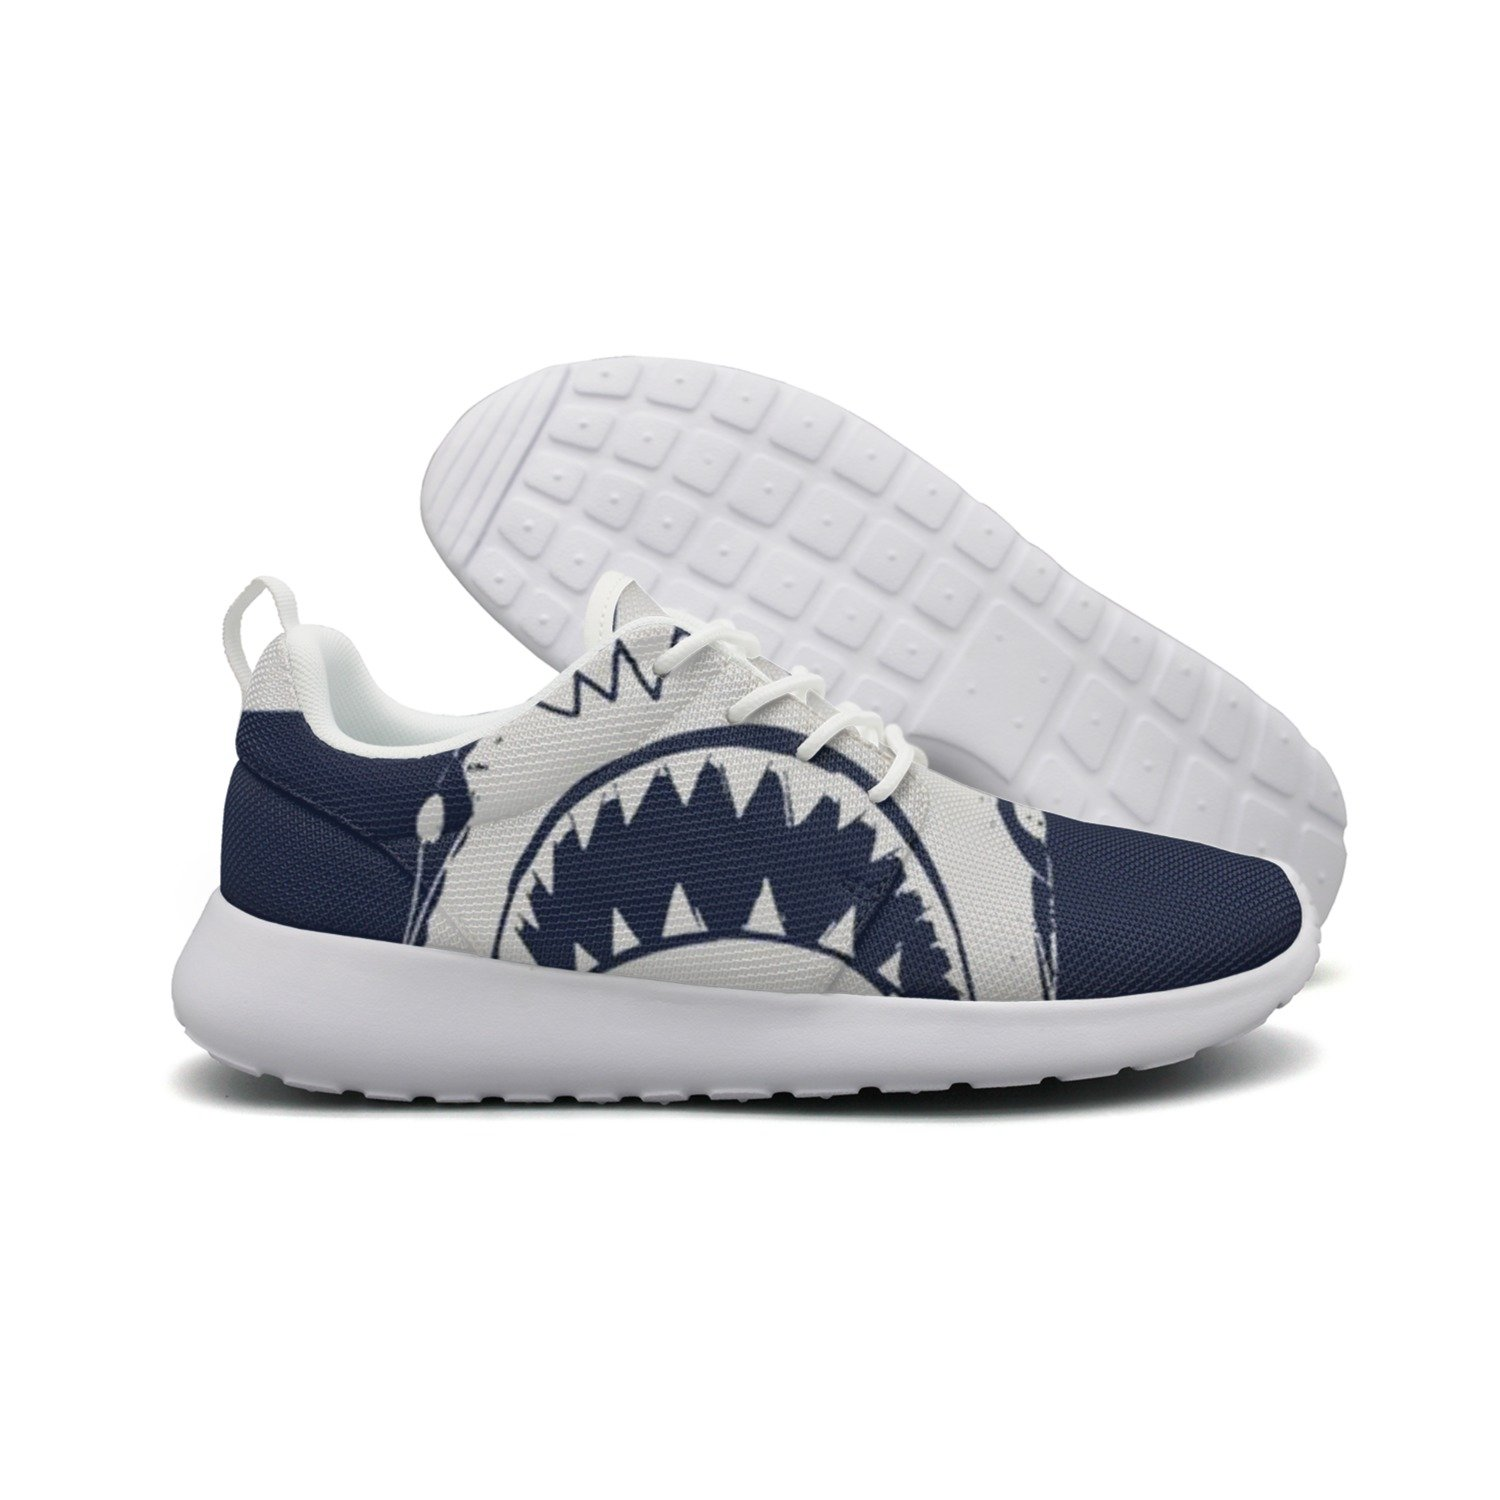 16227f18df1 Yes We re Gonna Need A Bigger Boat Men Sport Sneakers Running Shoes